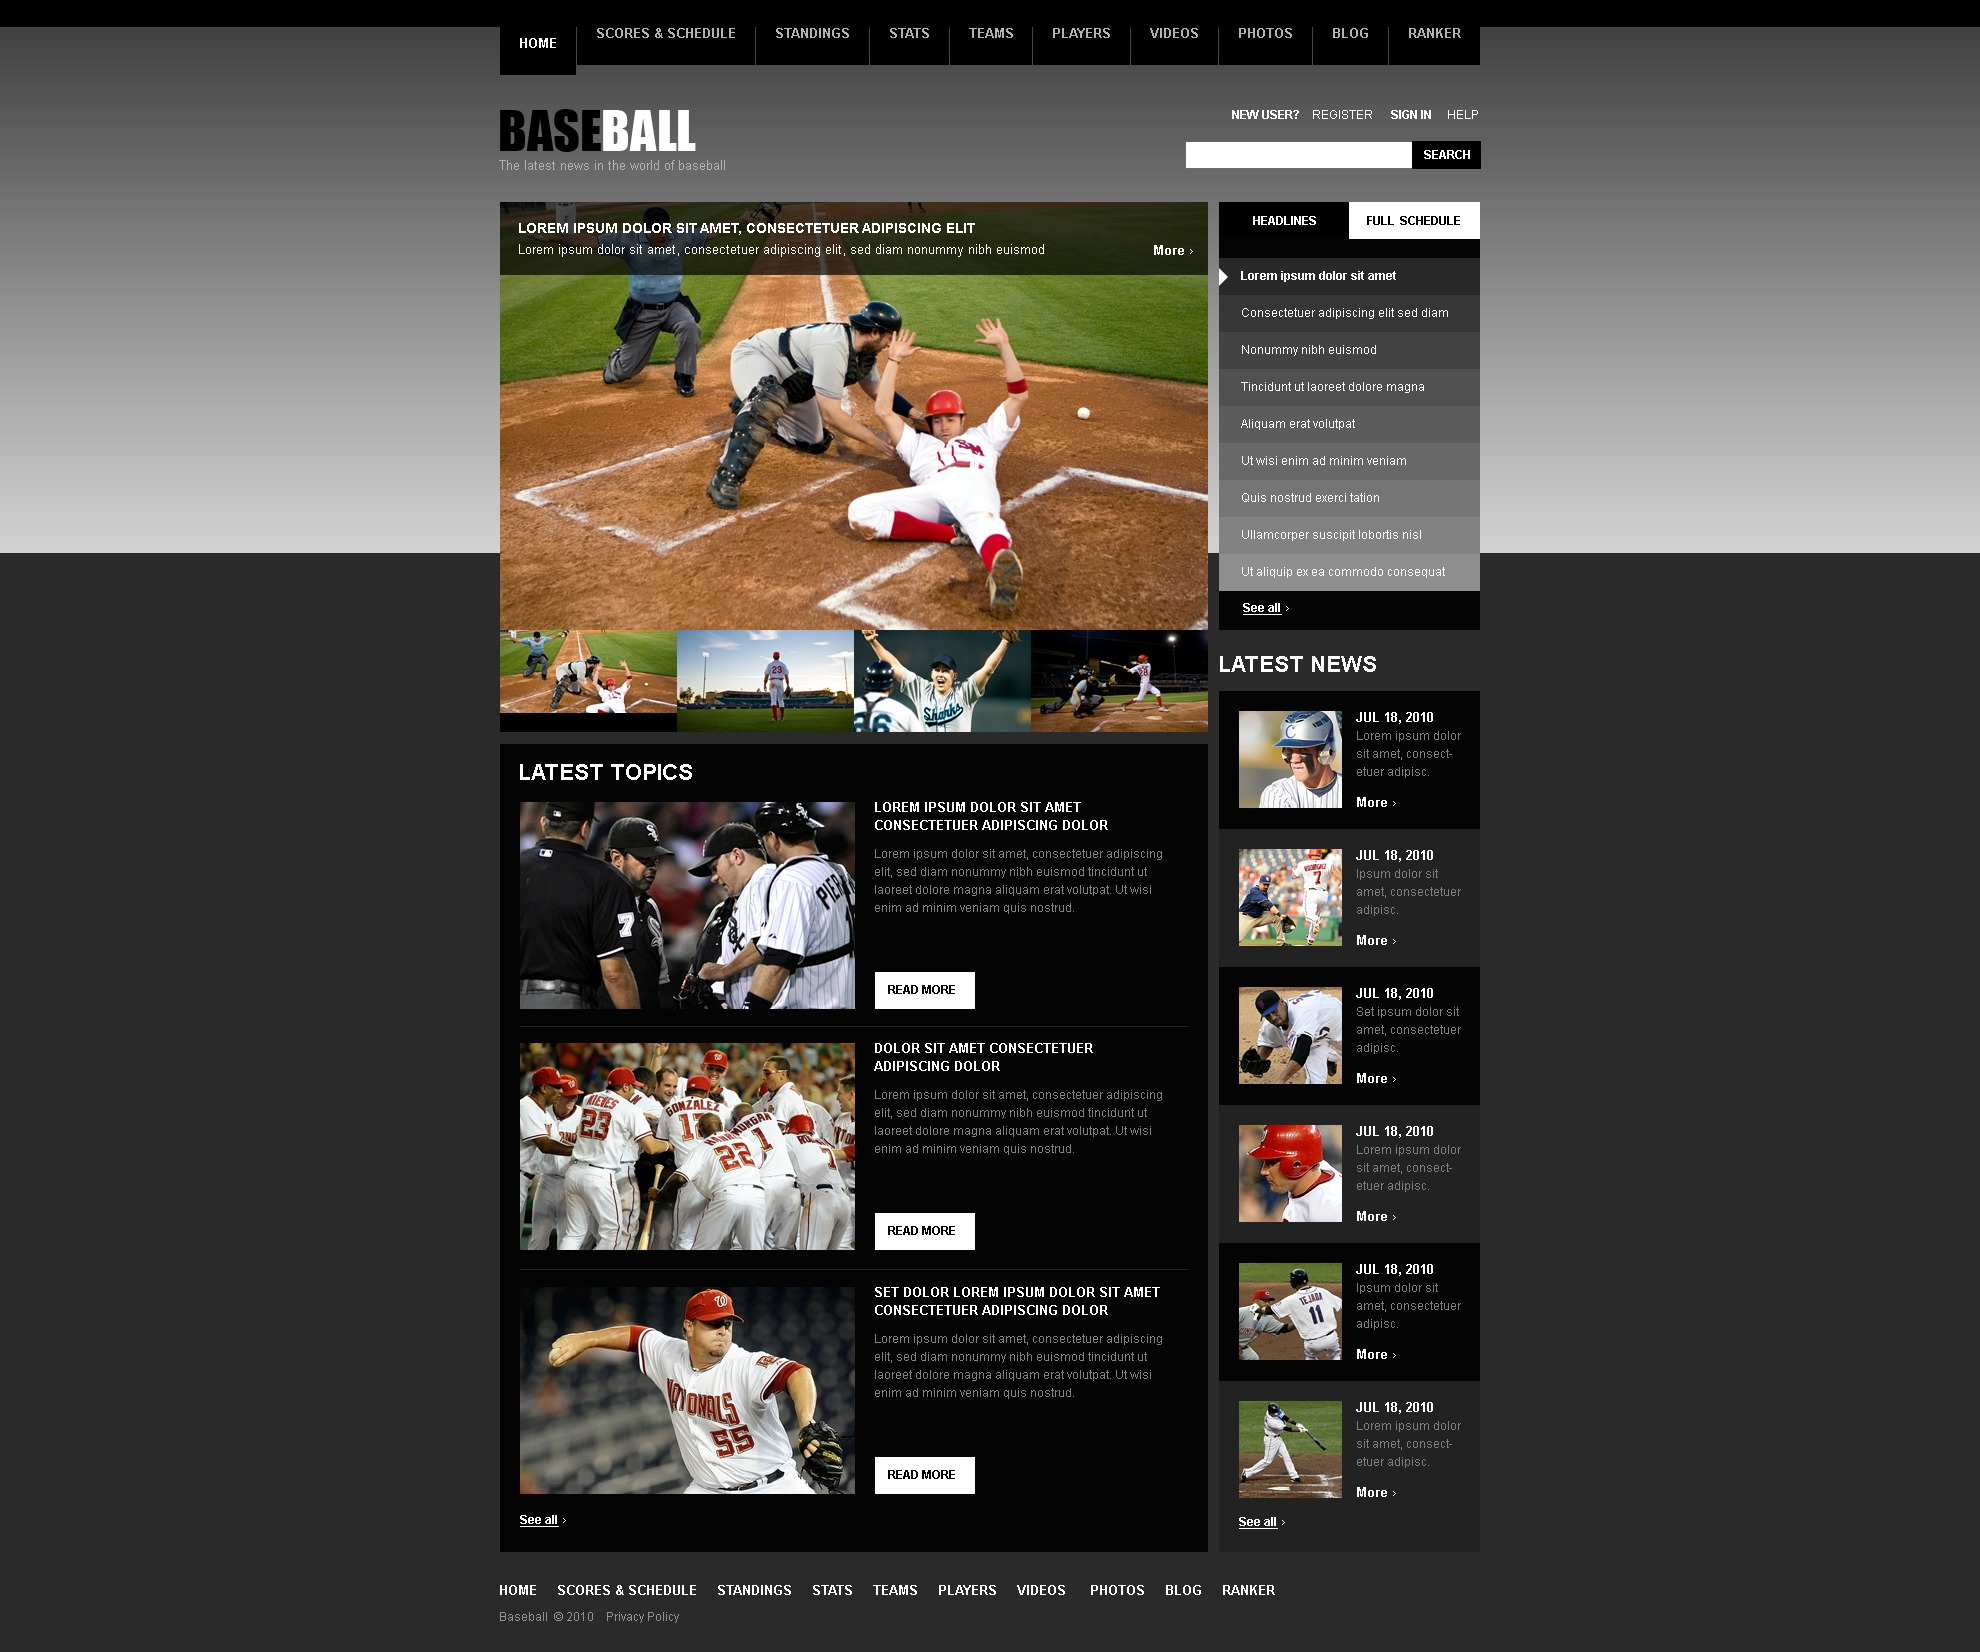 The Baseball Portal PSD Design 54081, one of the best PSD templates of its kind (sport, most popular, wide, jquery), also known as baseball portal PSD template, sport PSD template, score PSD template, championship PSD template, season PSD template, result PSD template, player PSD template, programs PSD template, photos PSD template, contacts PSD template, series PSD template, training PSD template, search PSD template, go PSD template, flash PSD template, tickets PSD template, info PSD template, video PSD template, latest news PSD template, official info PSD template, links PSD template, policy PSD template, contact PSD template, us PSD template, ball PSD template, kit PSD template, week PSD template, day PSD template, images PSD template, view PSD template, more PSD template, time and related with baseball portal, sport, score, championship, season, result, player, programs, photos, contacts, series, training, search, go, flash, tickets, info, video, latest news, official info, links, policy, contact, us, ball, kit, week, day, images, view, more, time, etc.